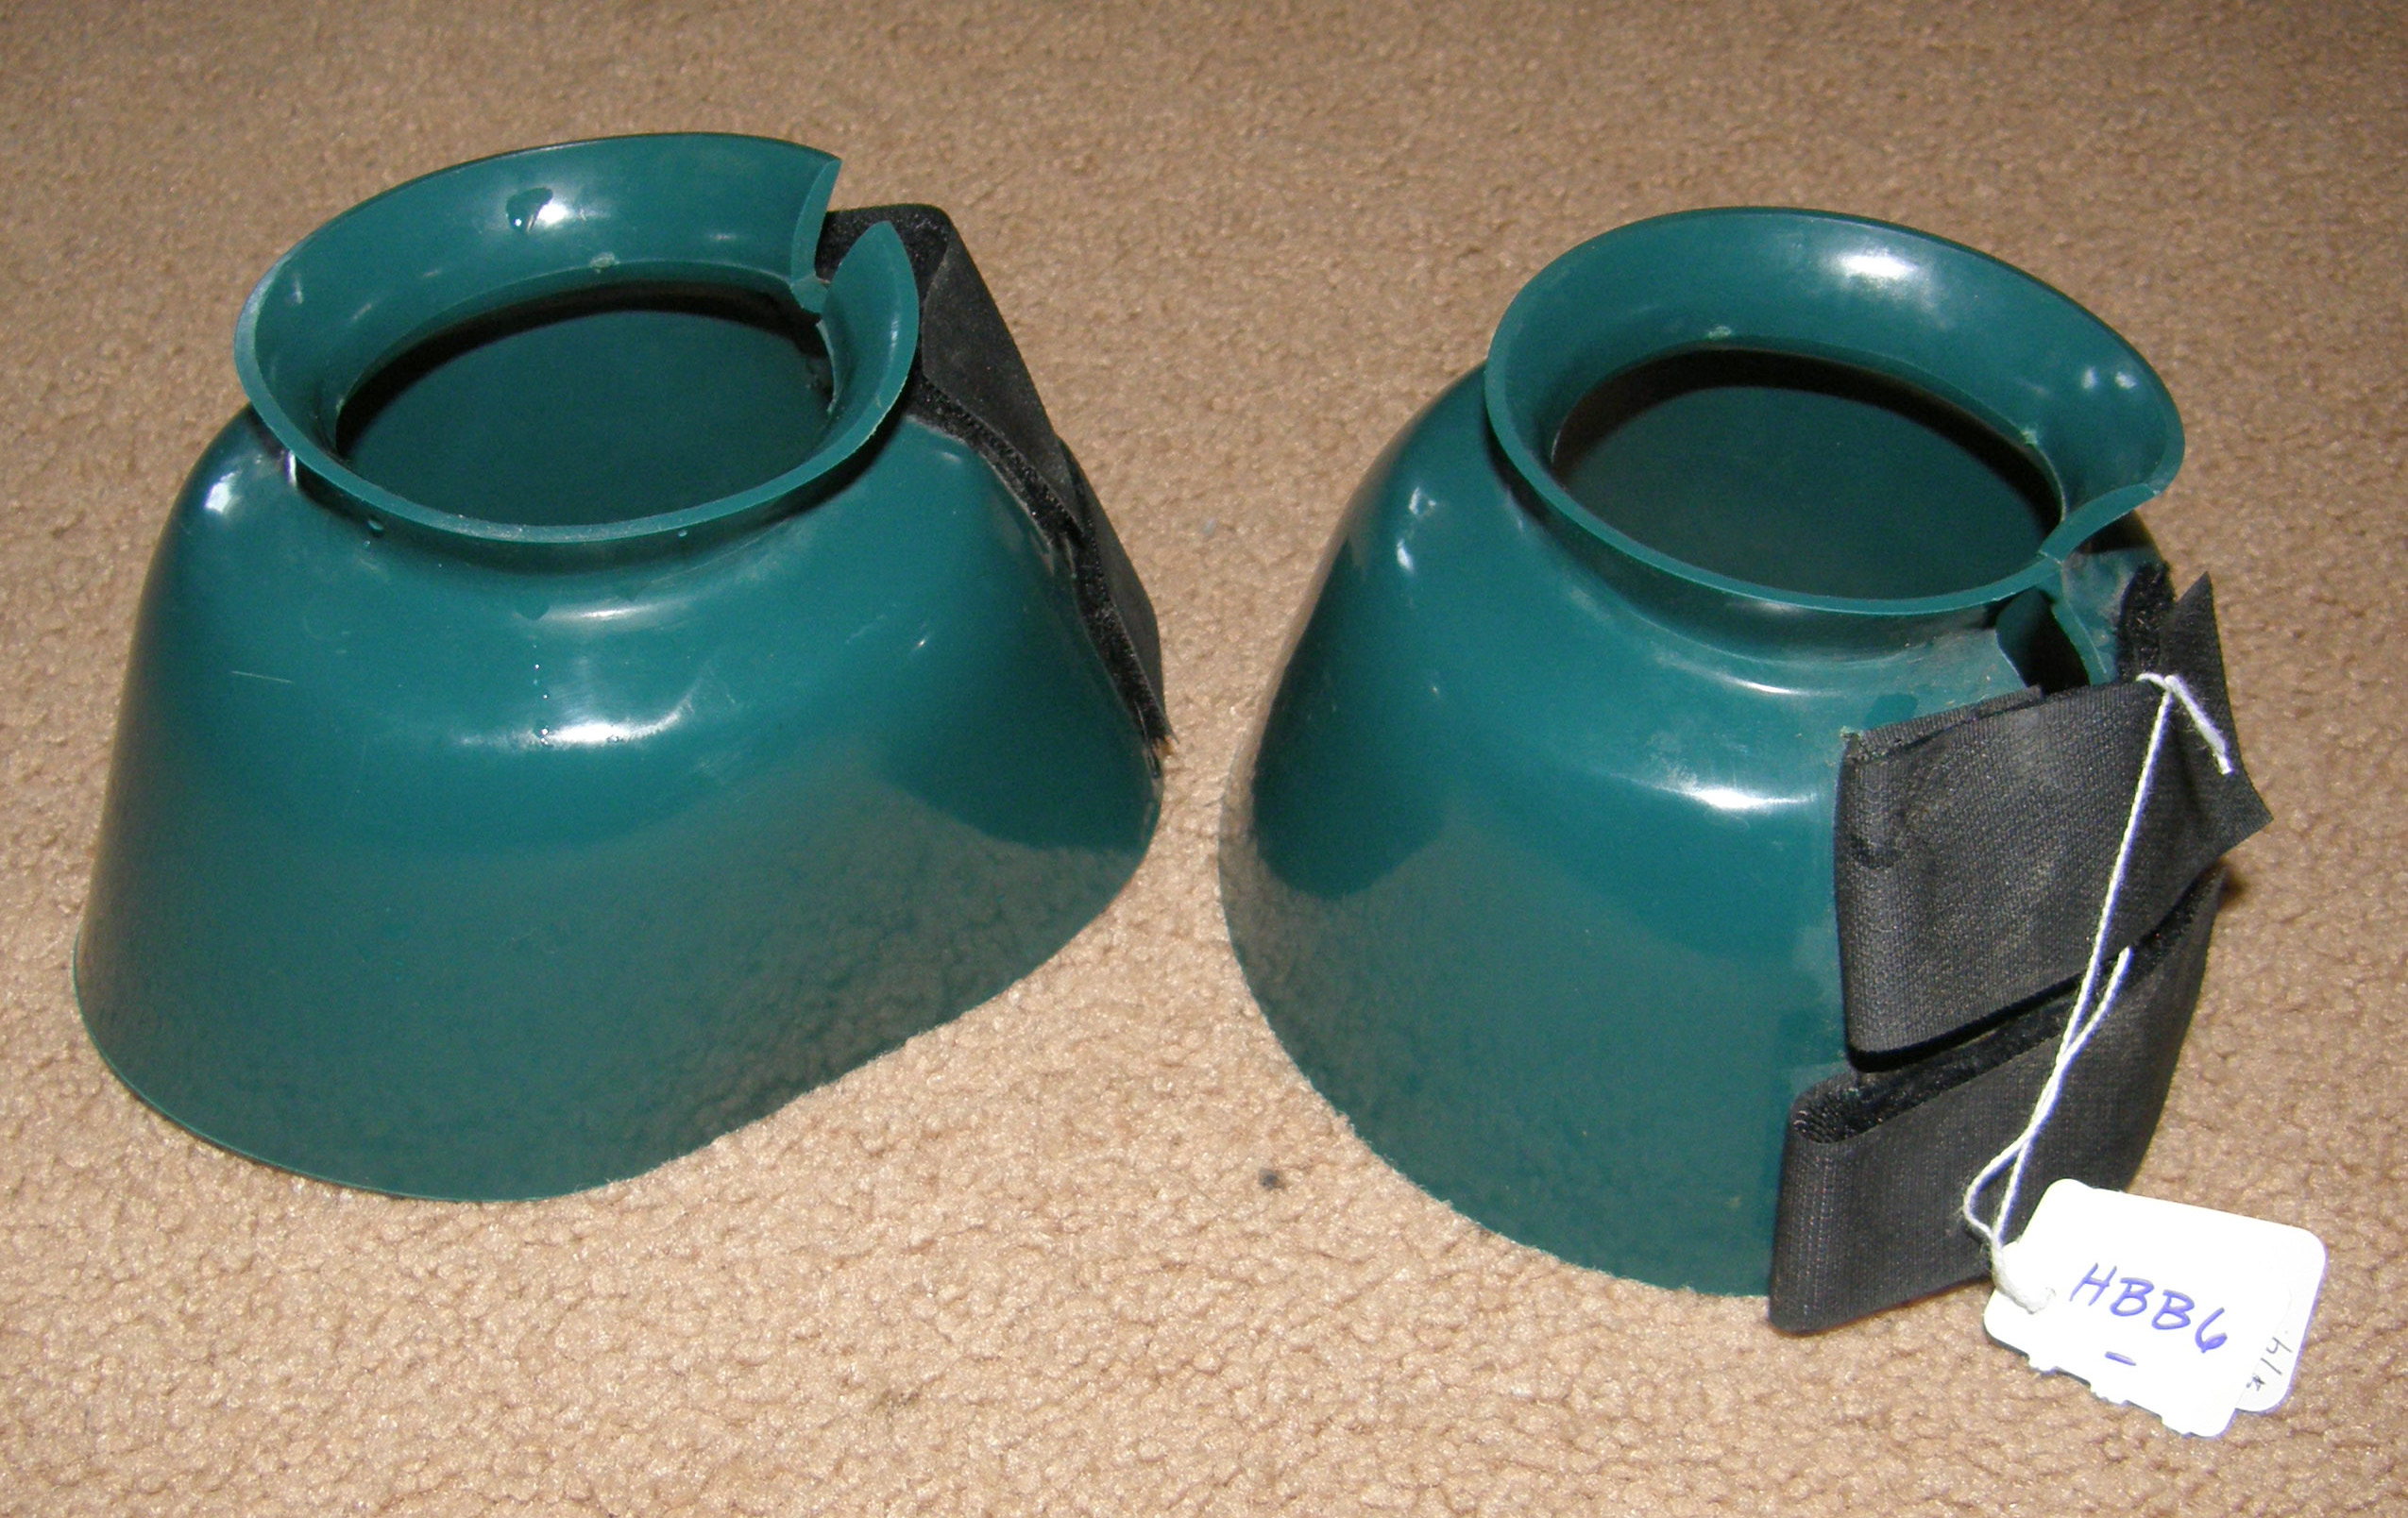 PVC Smooth Bell Boots Overreach Boots Double Velcro Closure M Horse Teal Green